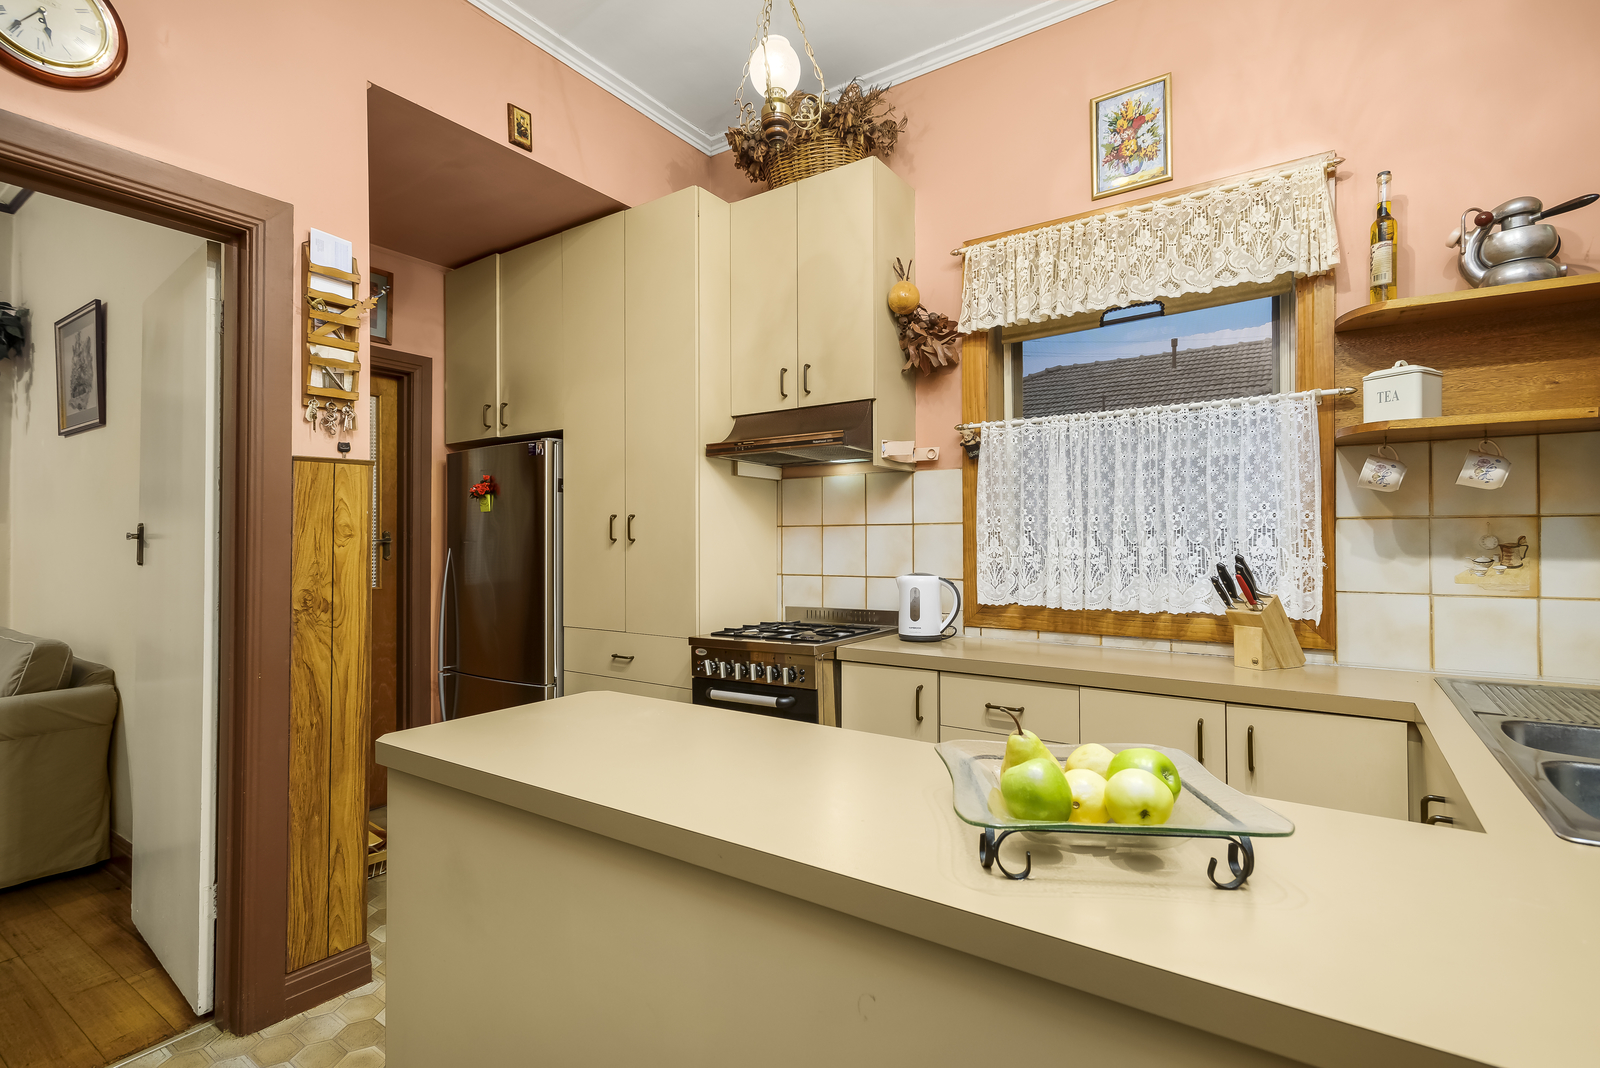 19 Sussex Road, Caulfield South 3162 - Image 3